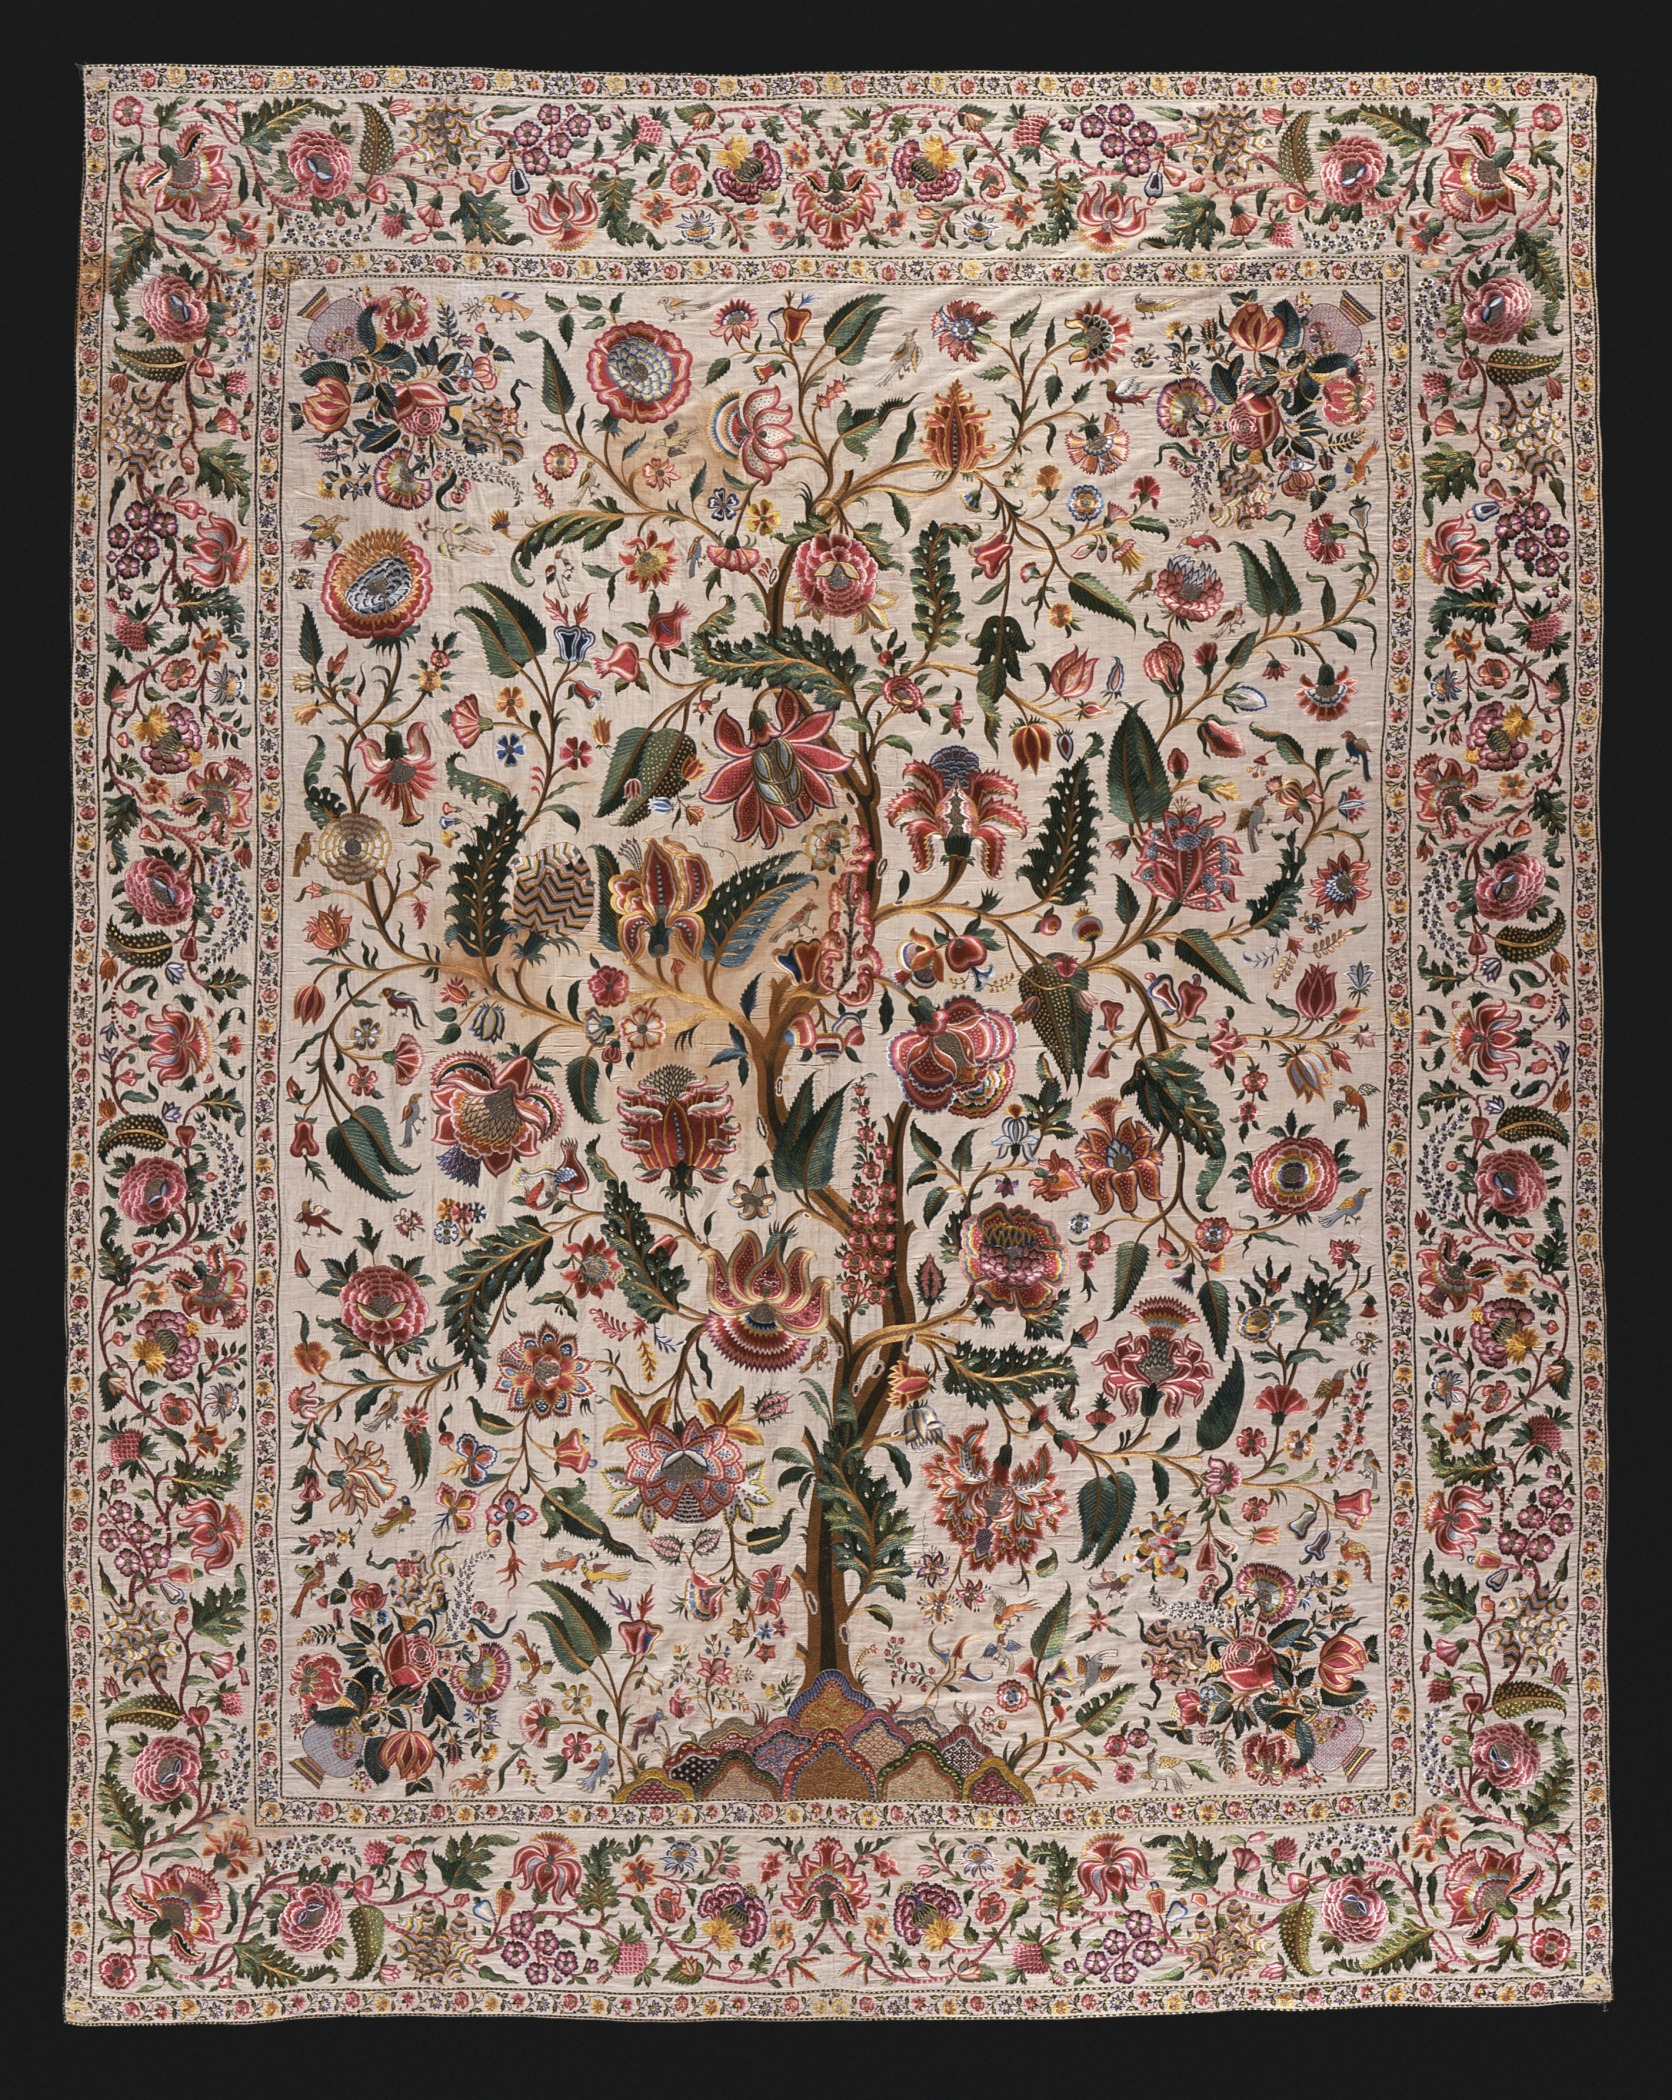 http://upload.wikimedia.org/wikipedia/commons/c/c3/Bed_or_Wall_Hanging_with_Design_of_Flowering_Tree_(Palampore)_LACMA_M.74.3.jpg